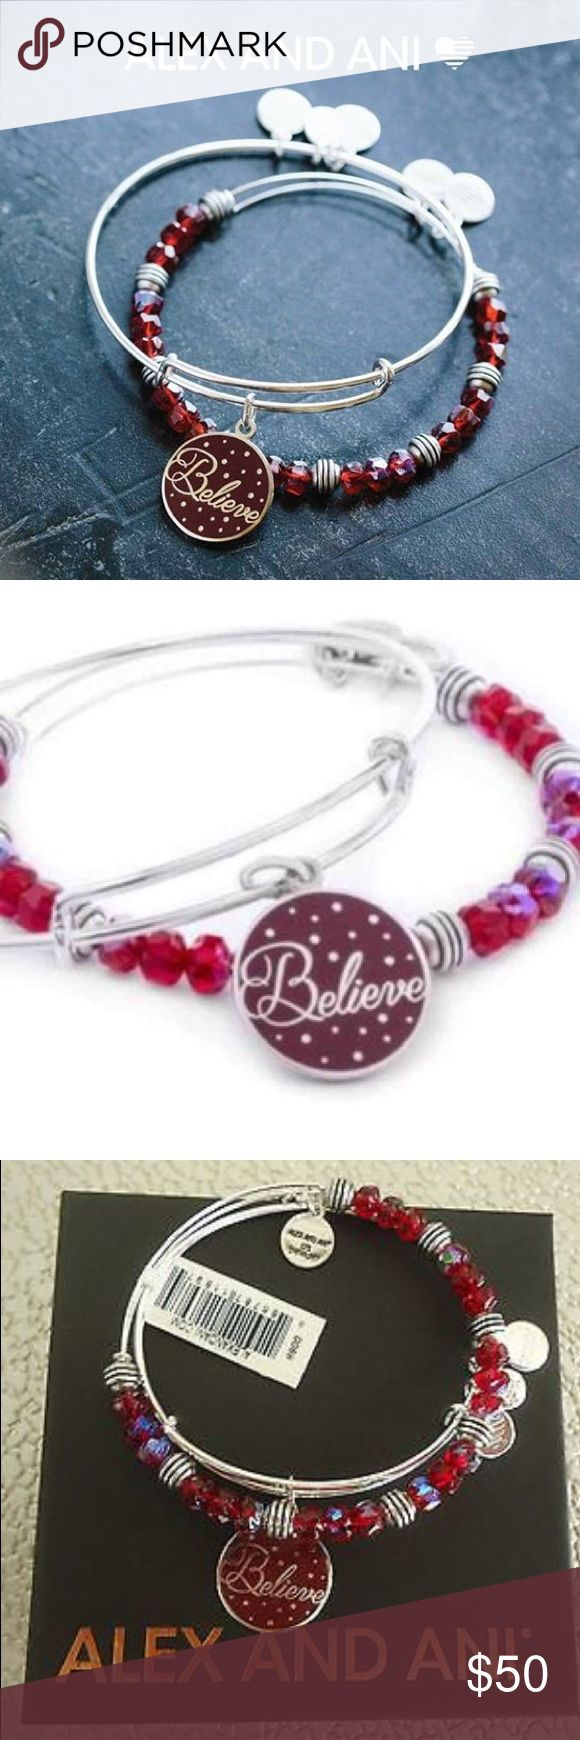 "Alex and Ani Holiday ""Believe"" 2 Bracelet Set New with tags! This set features two festive bangles that will accent your charmed arm beautifully. One bangle showcases a charm with the word ""Believe"" inscribed over rich, wine colored enamel. Accenting this charm is a matching bangle with crimson stones and silver-tone beads.  This bangle set can be worn on its own or stacked with other bangles that hold significant meaning to you. Crafted in Shiny Silver Finish, these bangles are expandable…"